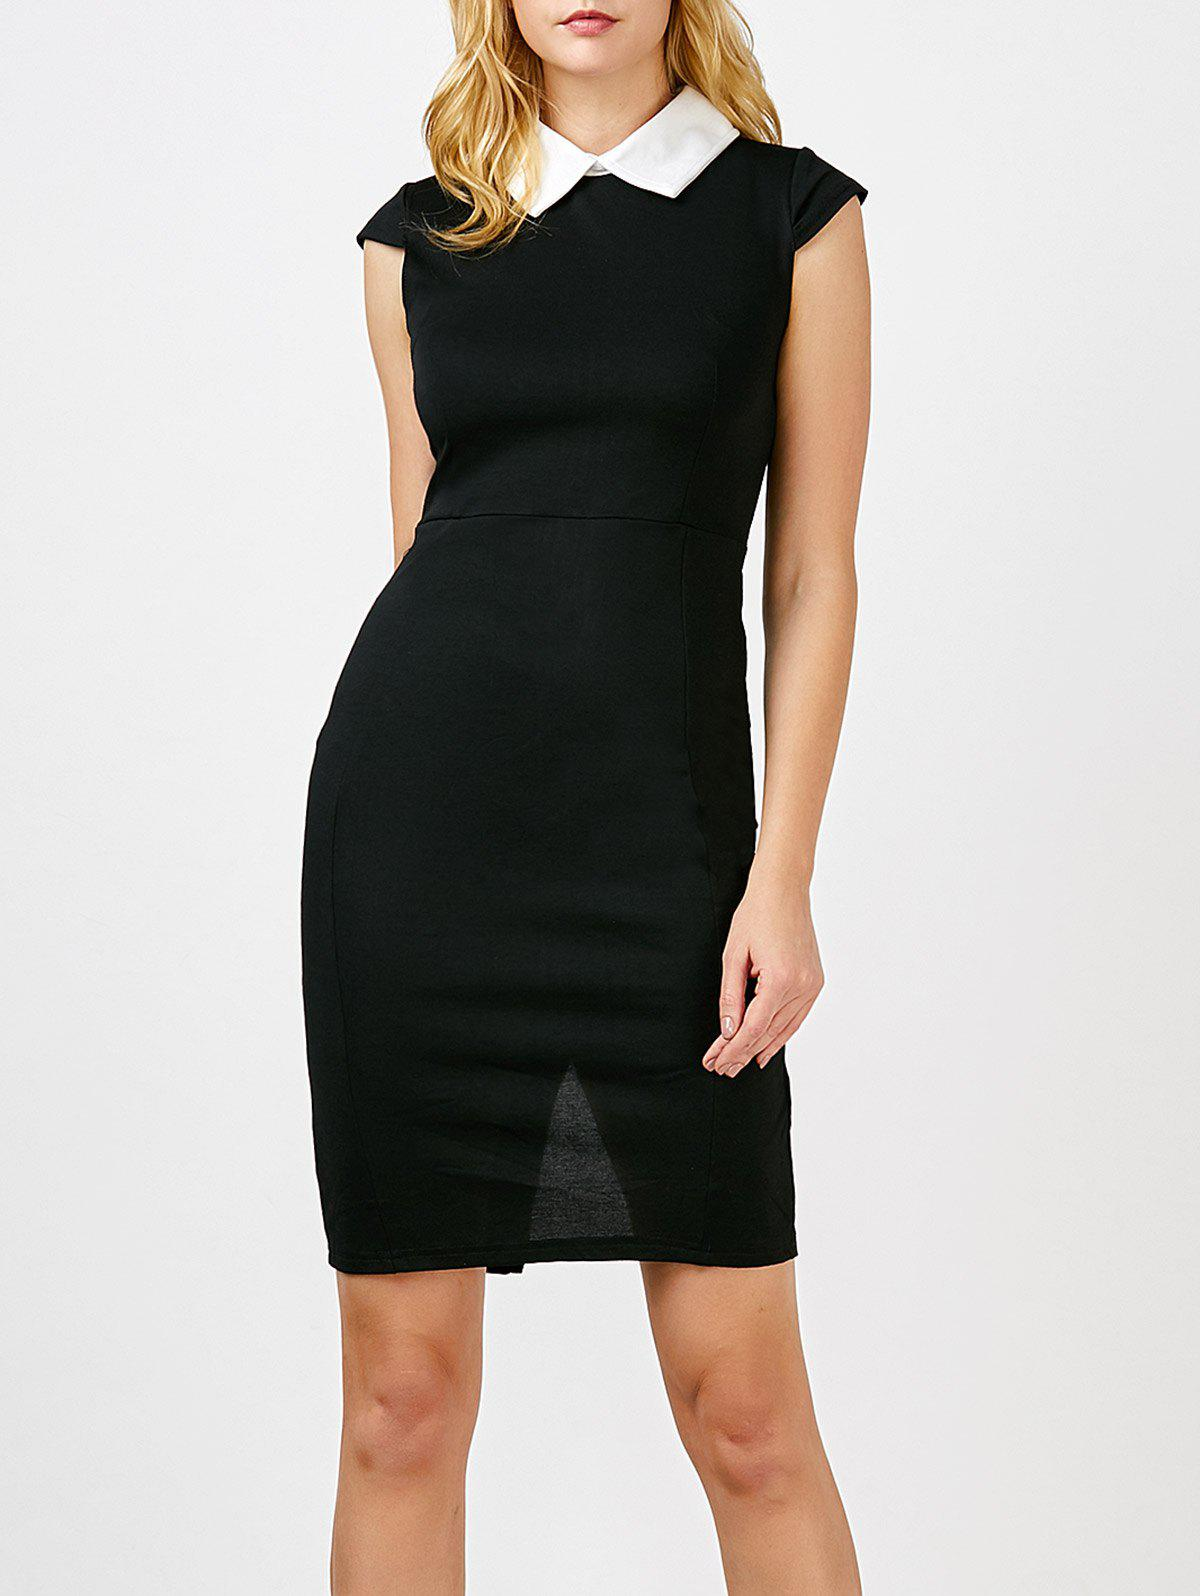 Flat Collar Back Slit Mini Sheath Bodycon Dress - BLACK 2XL